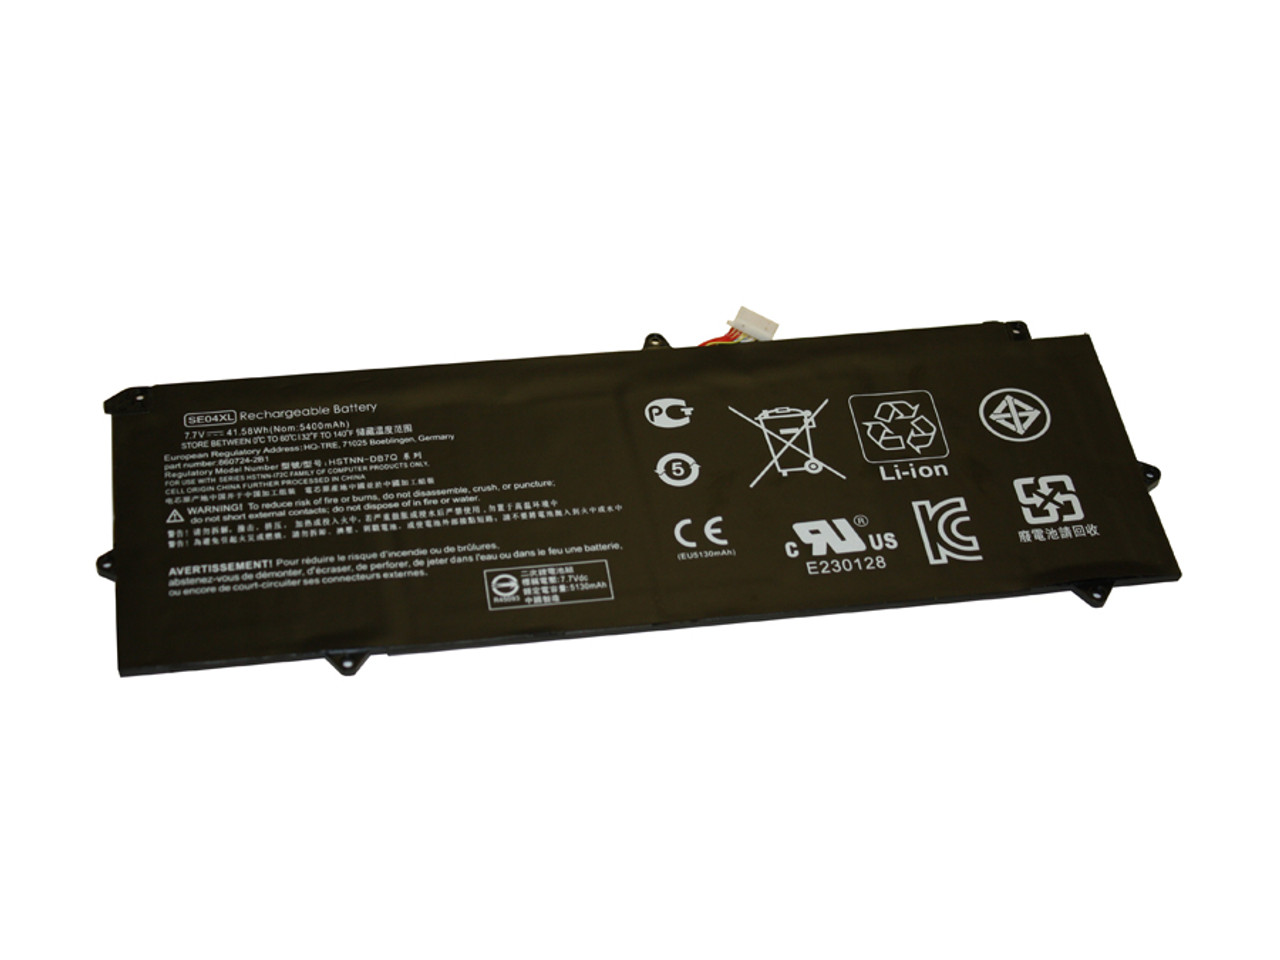 Replacement  Battery for HP - COMPAQ HP 612 G2, HP X2 612 G2, HP Pro X2 612 G2